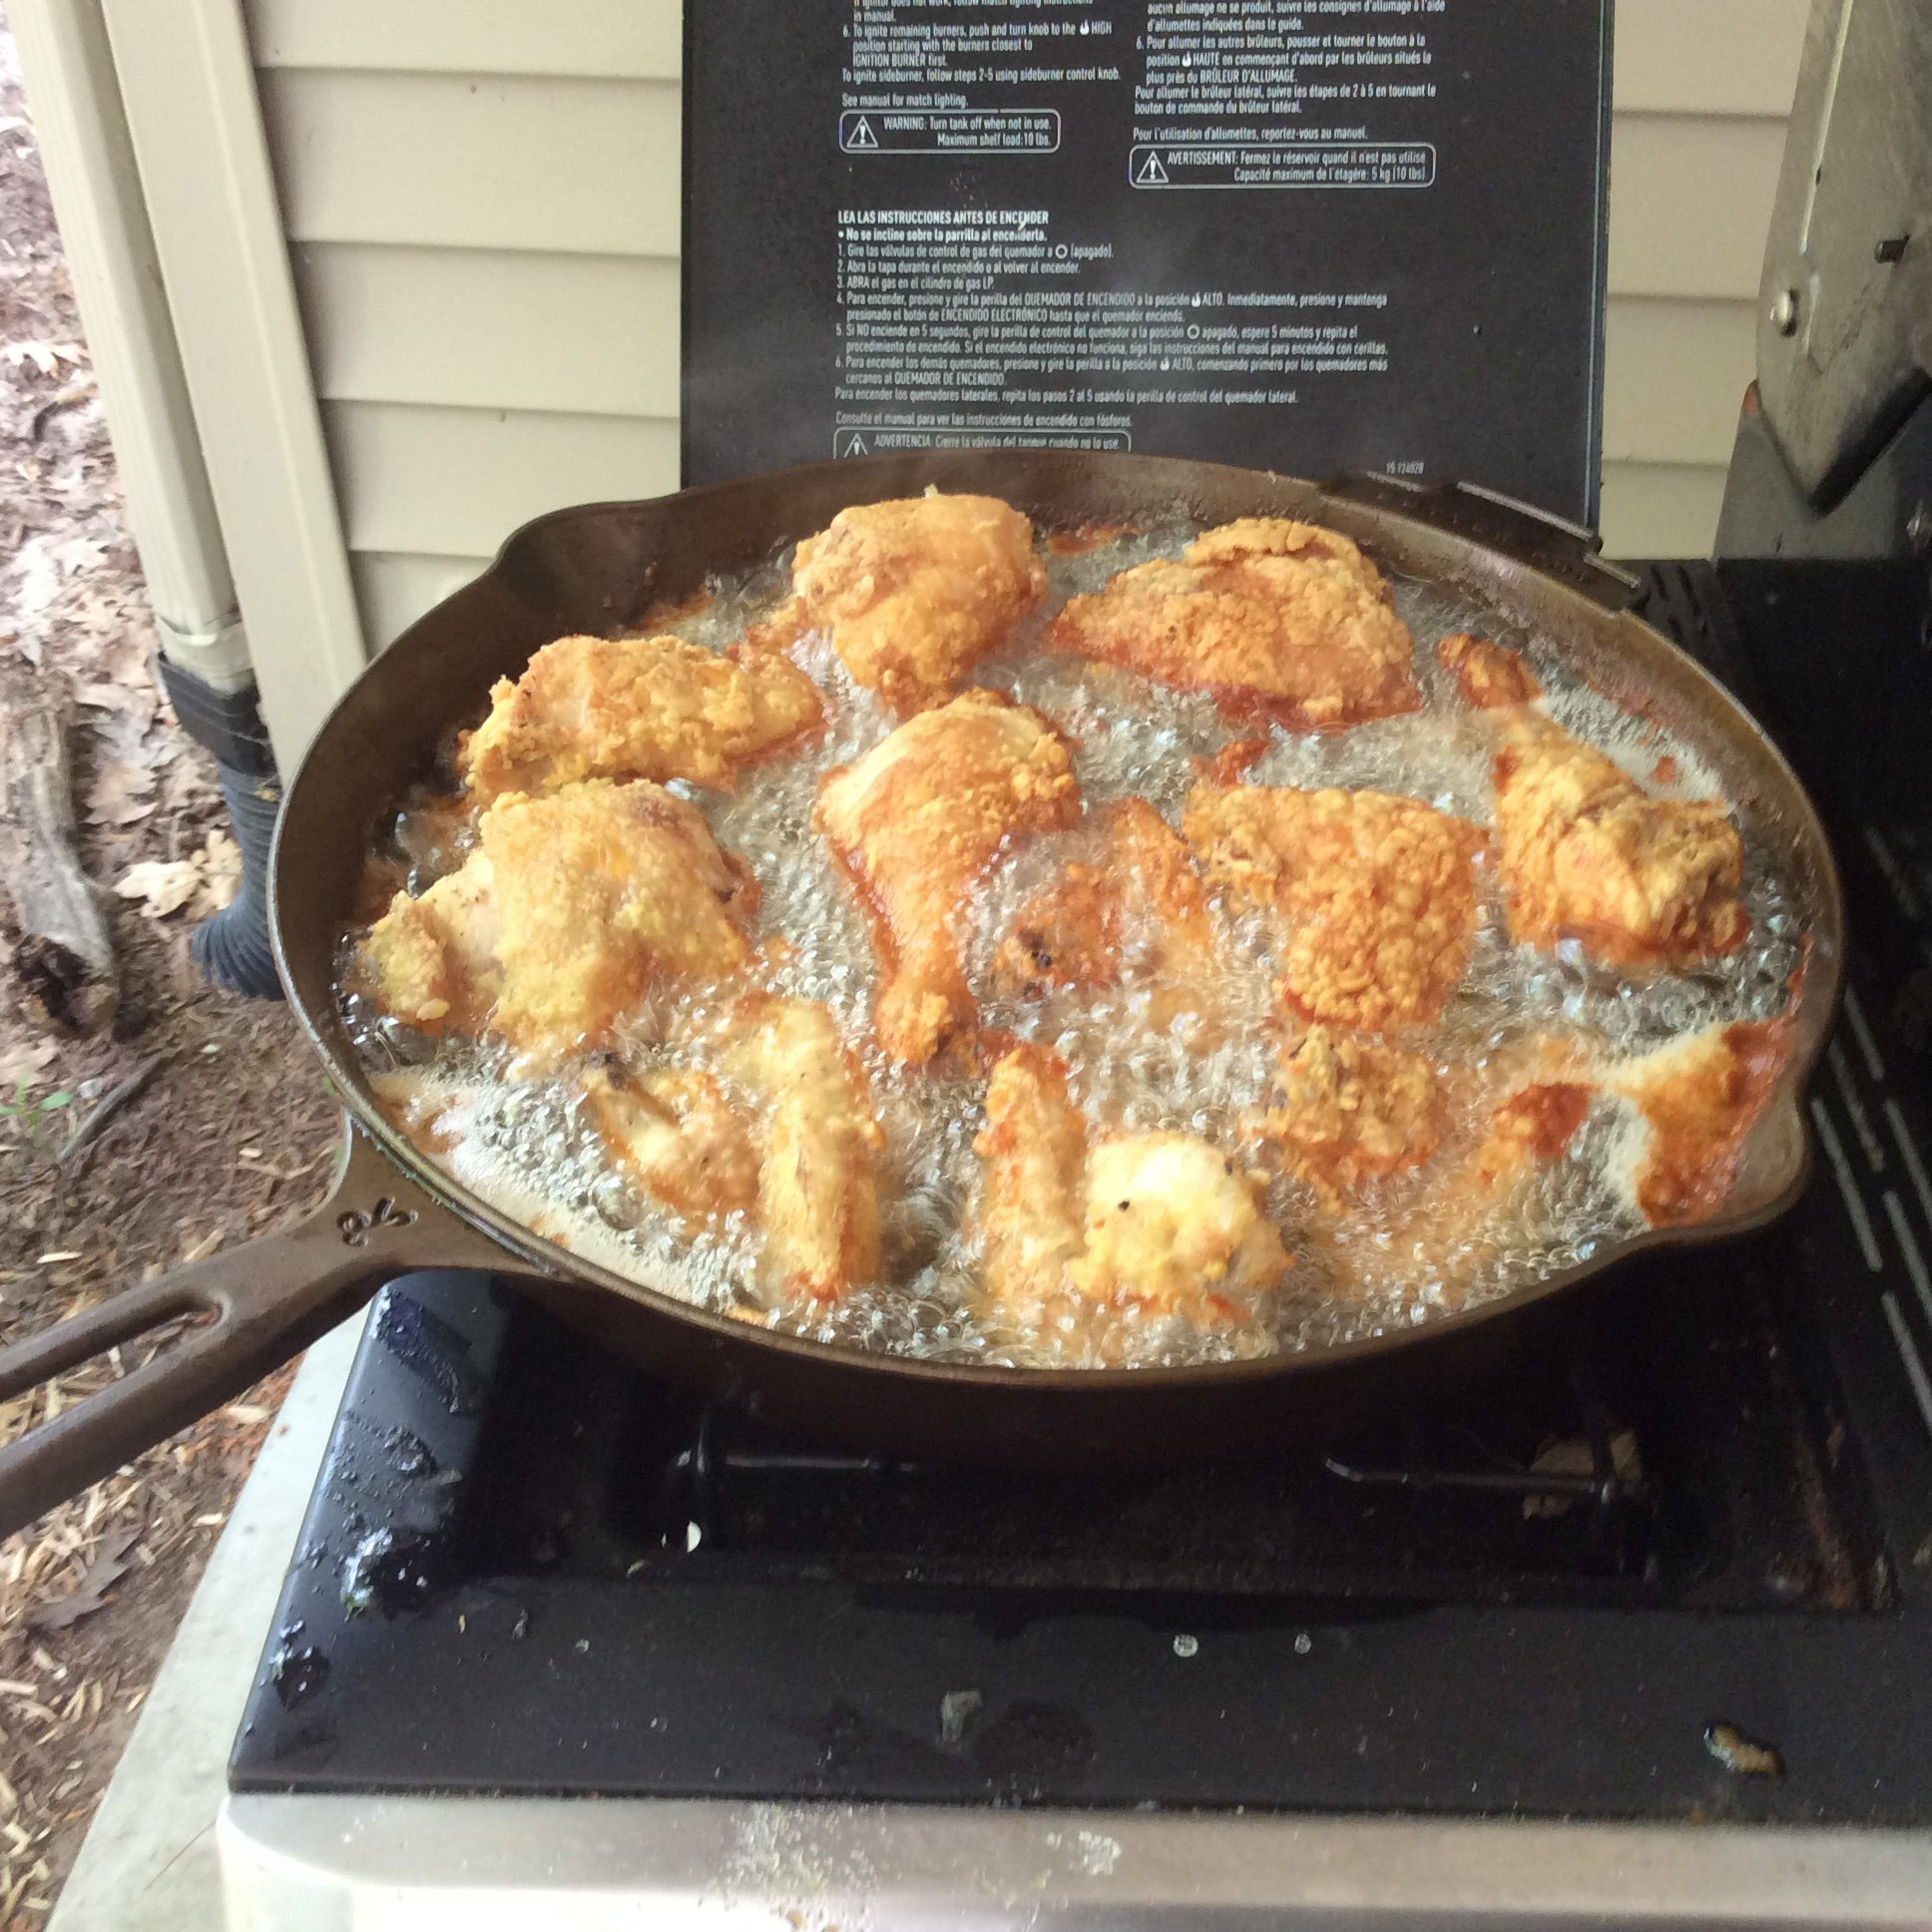 Chicken fried in pork lard